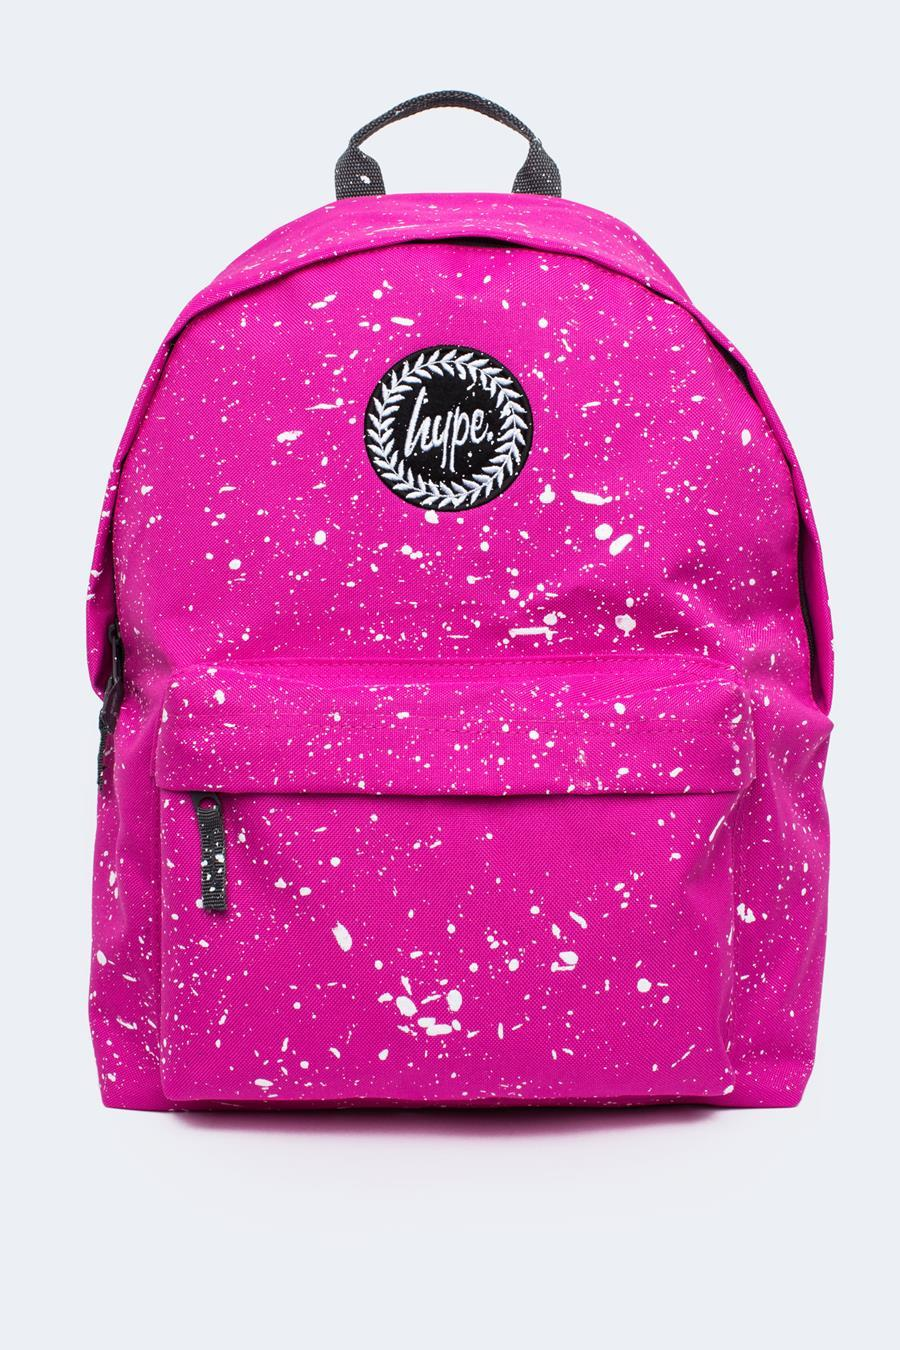 HYPE PINK WITH WHITE SPECKLE BACKPACK  6e247789eb96f